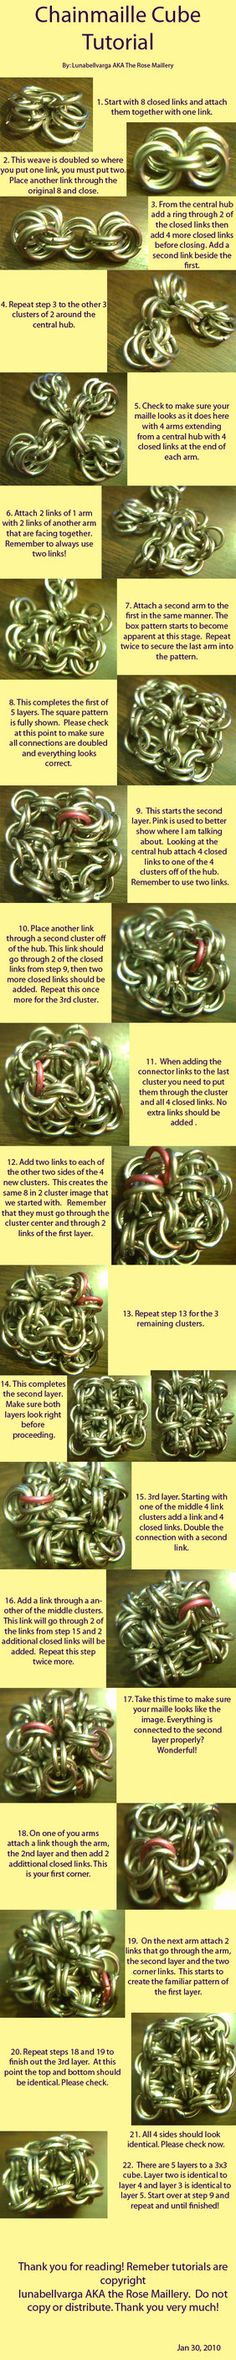 Chainmaille Cube Tutorial by ~lunabellvarga on deviantART